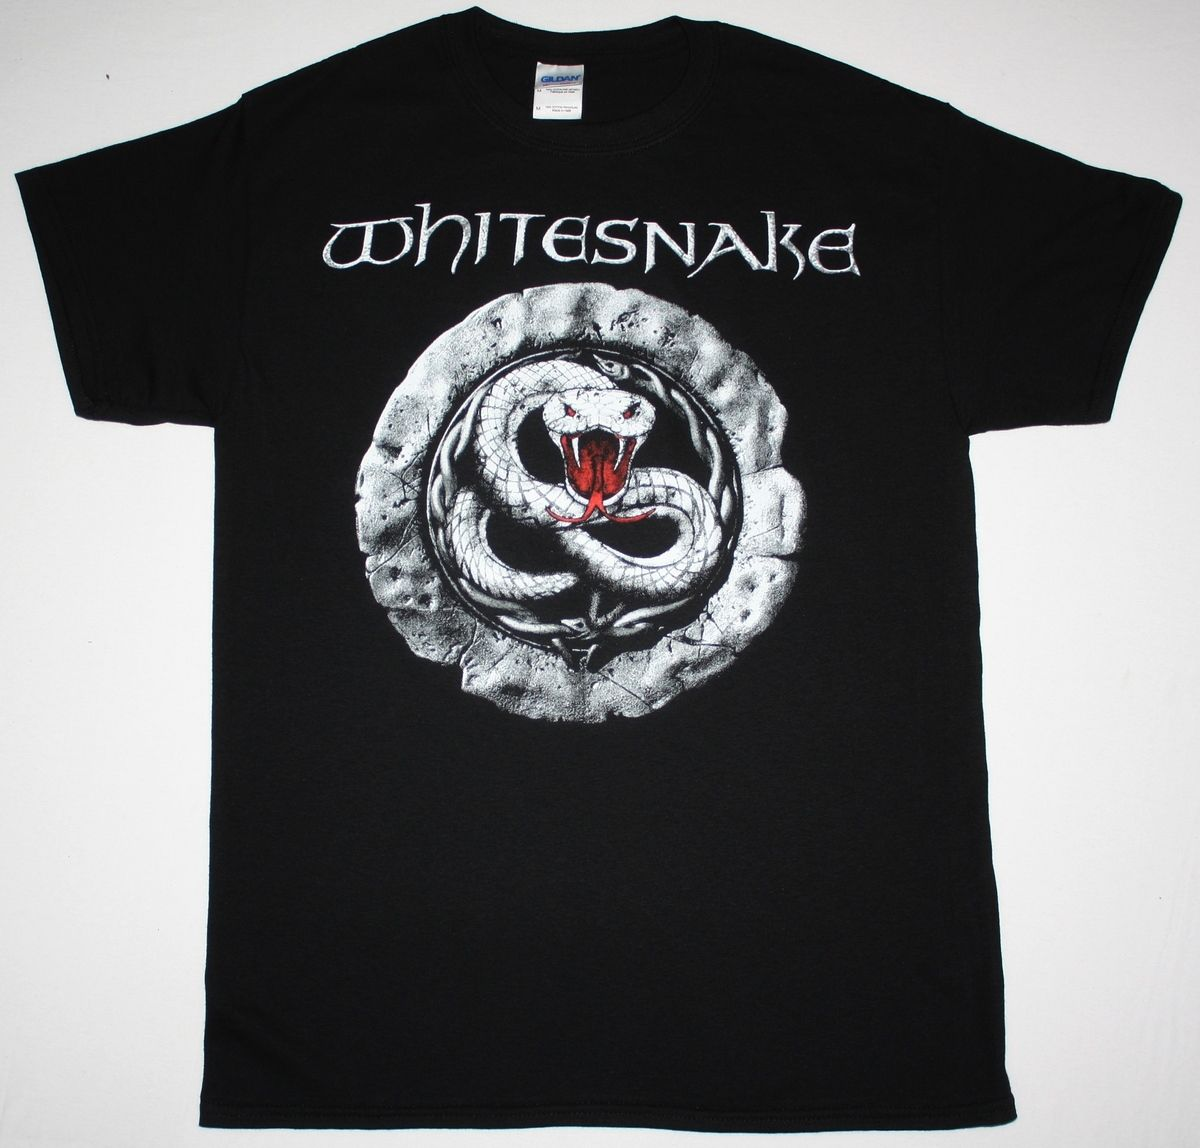 WHITESNAKE SIGN HARD ROCK BAND DAVID COVERDALE DEEP PURPLE DIO NEW BLACK T-SHIRT T Shirt Summer Famous Clothing image